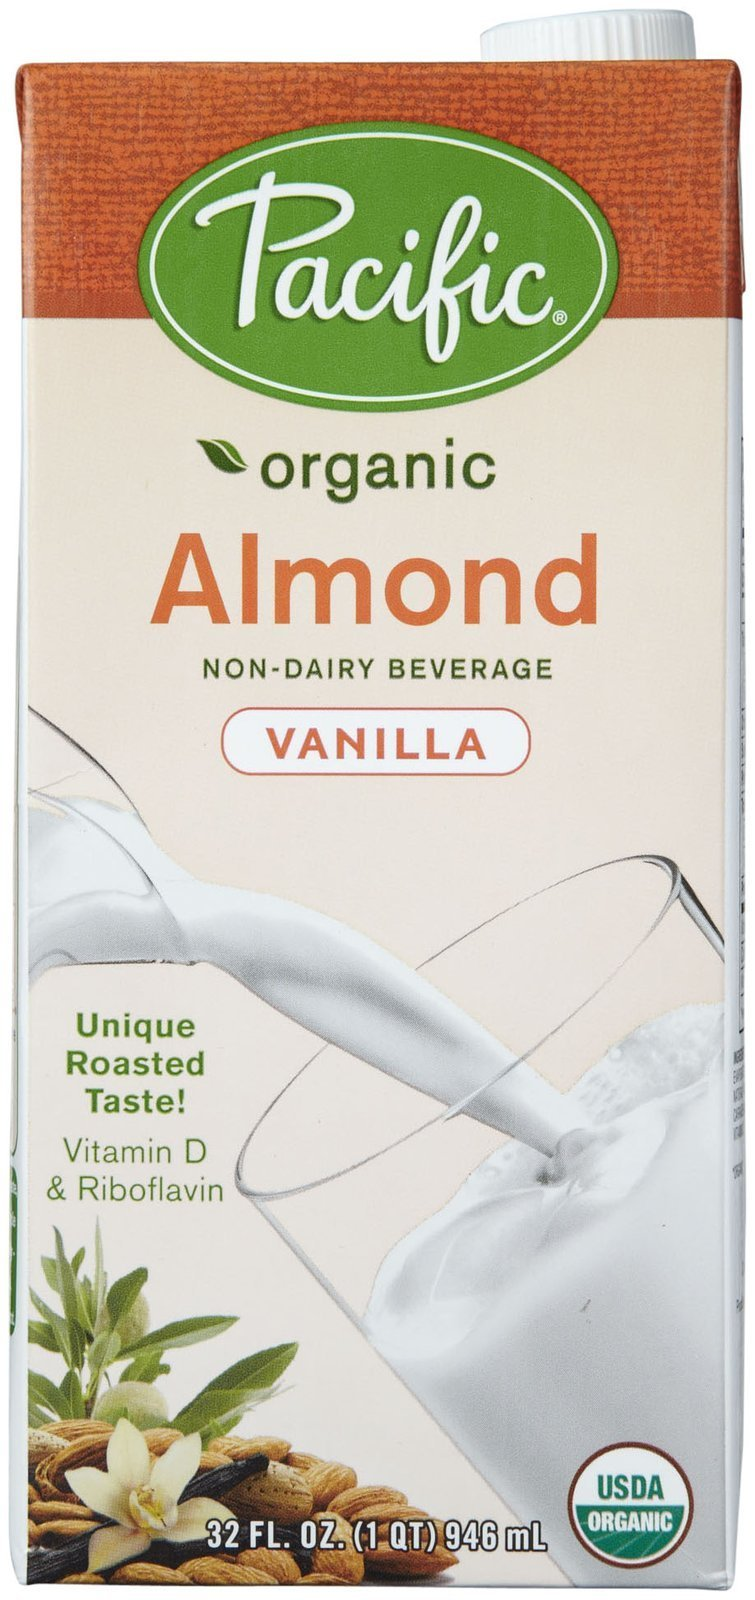 Pacific Natural Foods Organic Natural Almond Beverage - Vanilla - 32 oz